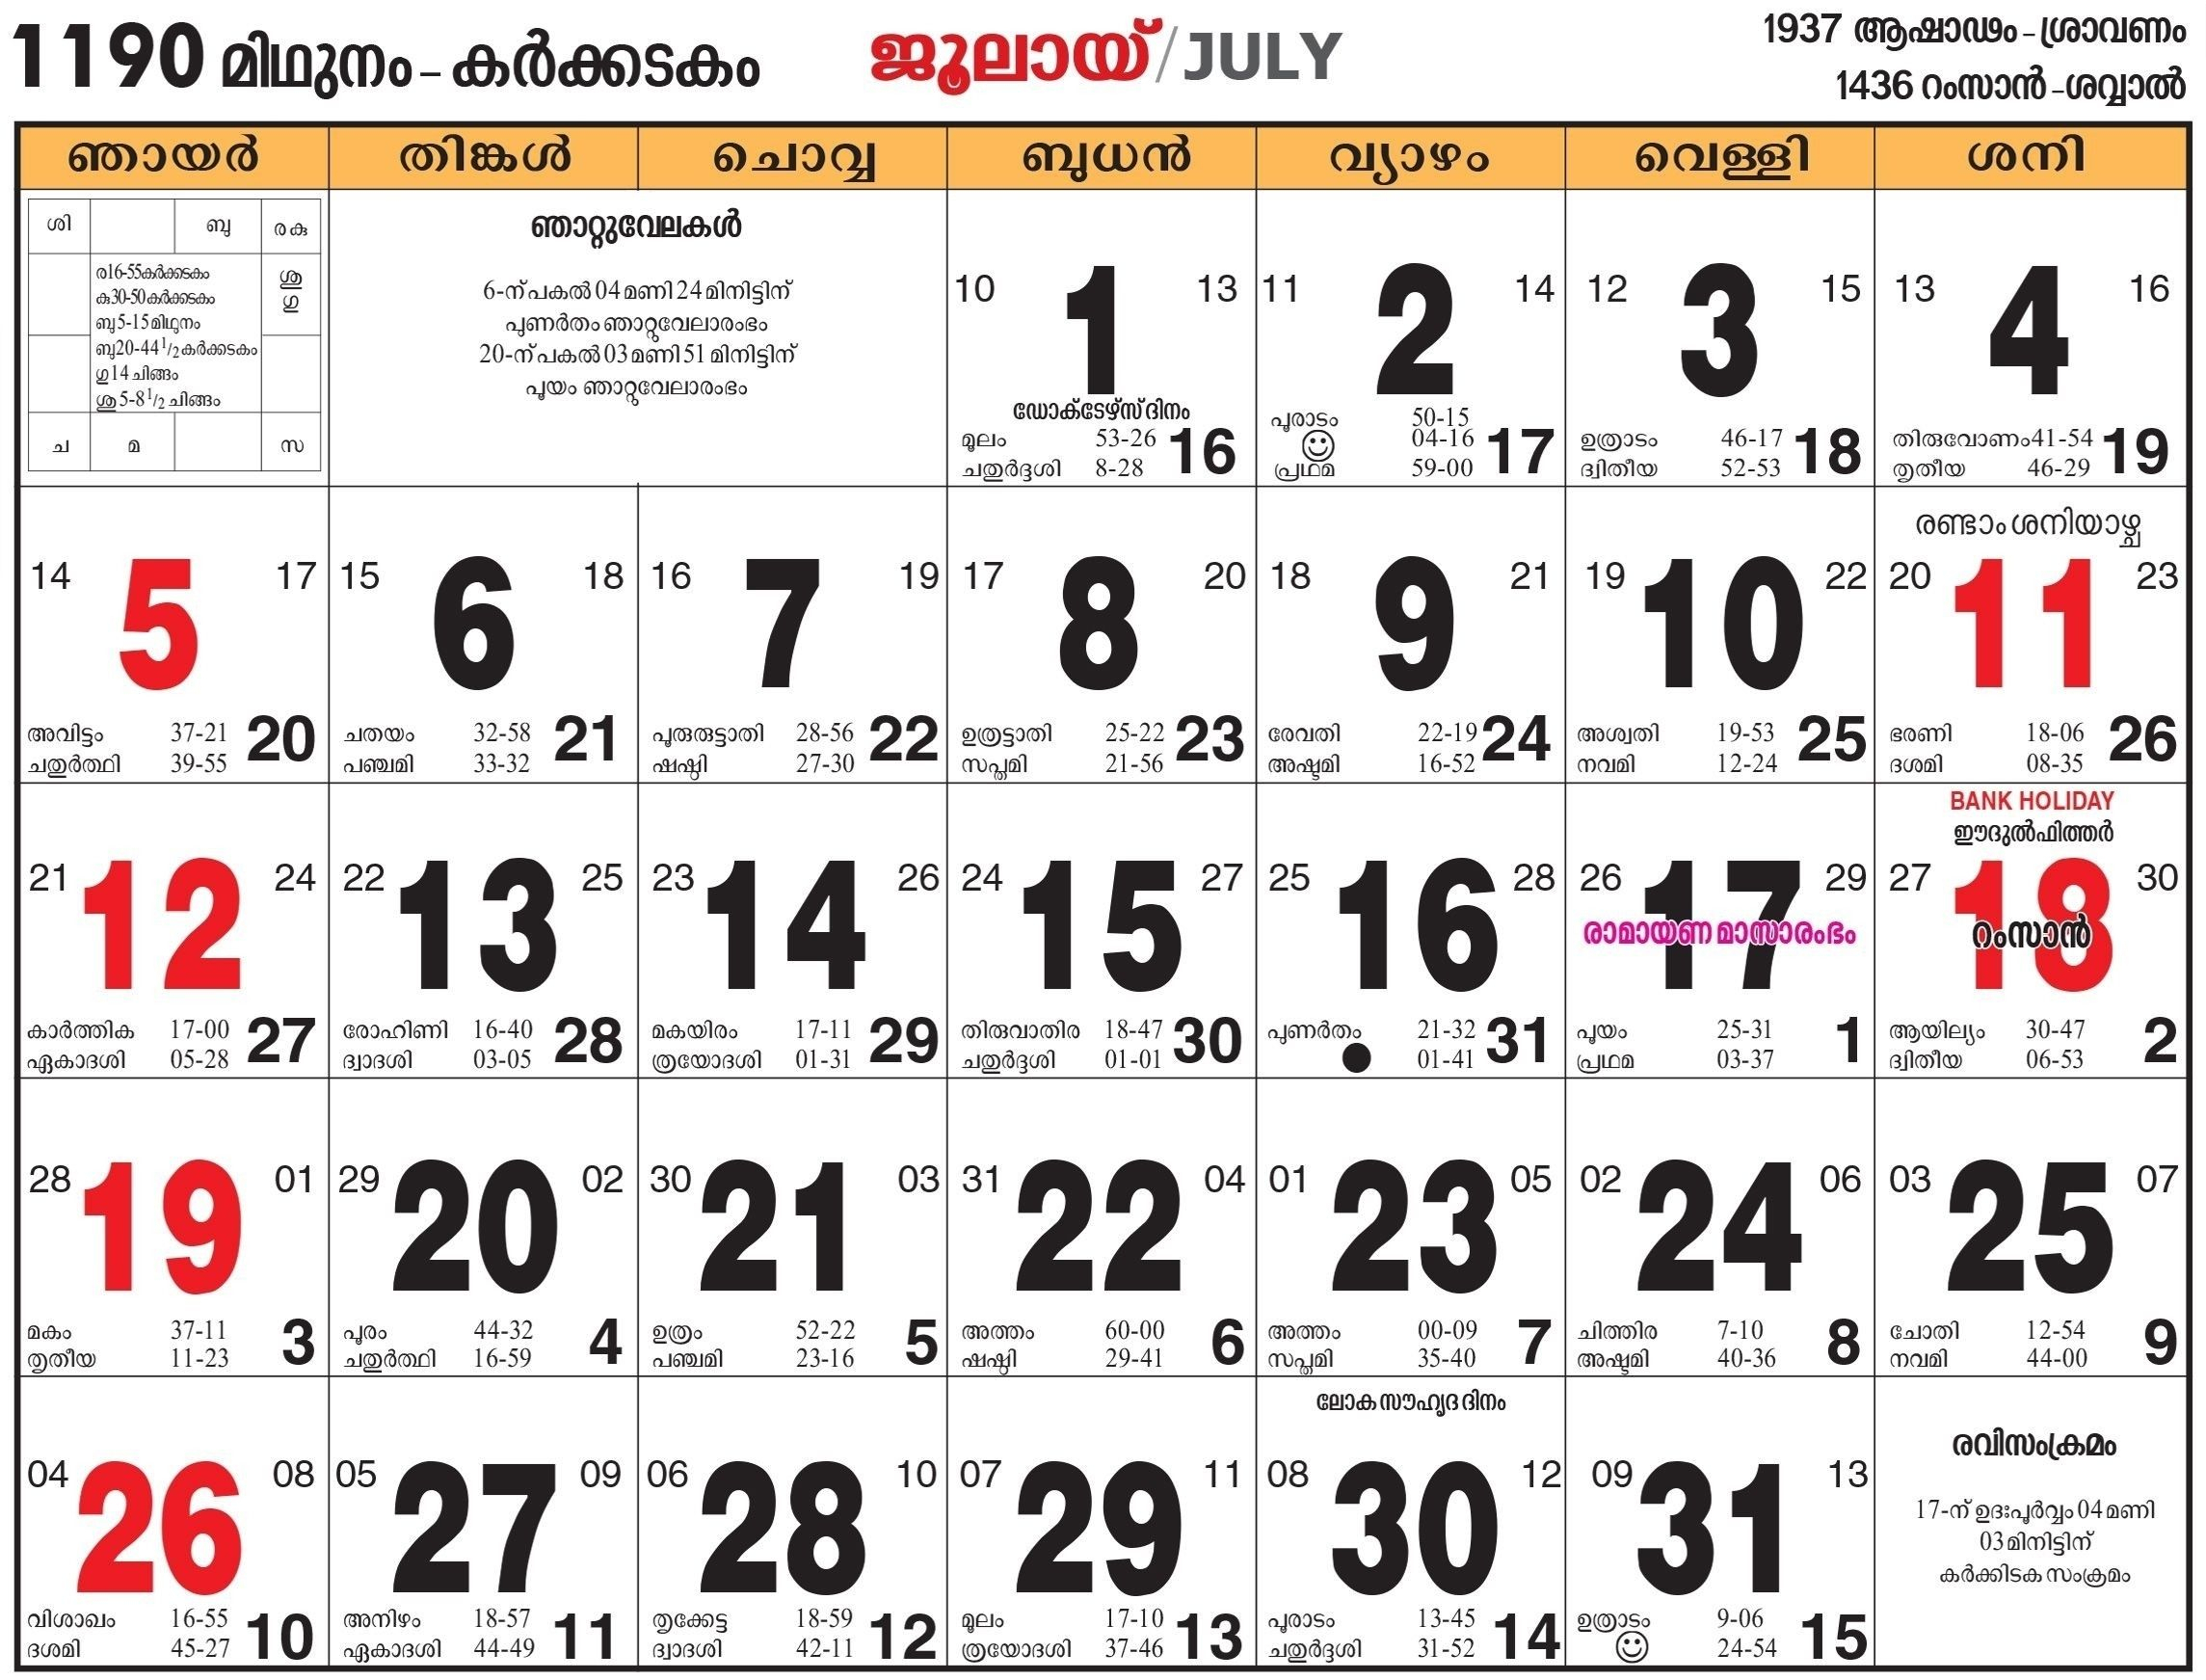 Malayala Manorama 2018 December Calendar Pdf | Holidays with regard to Malayala Manorama Calendar 2017